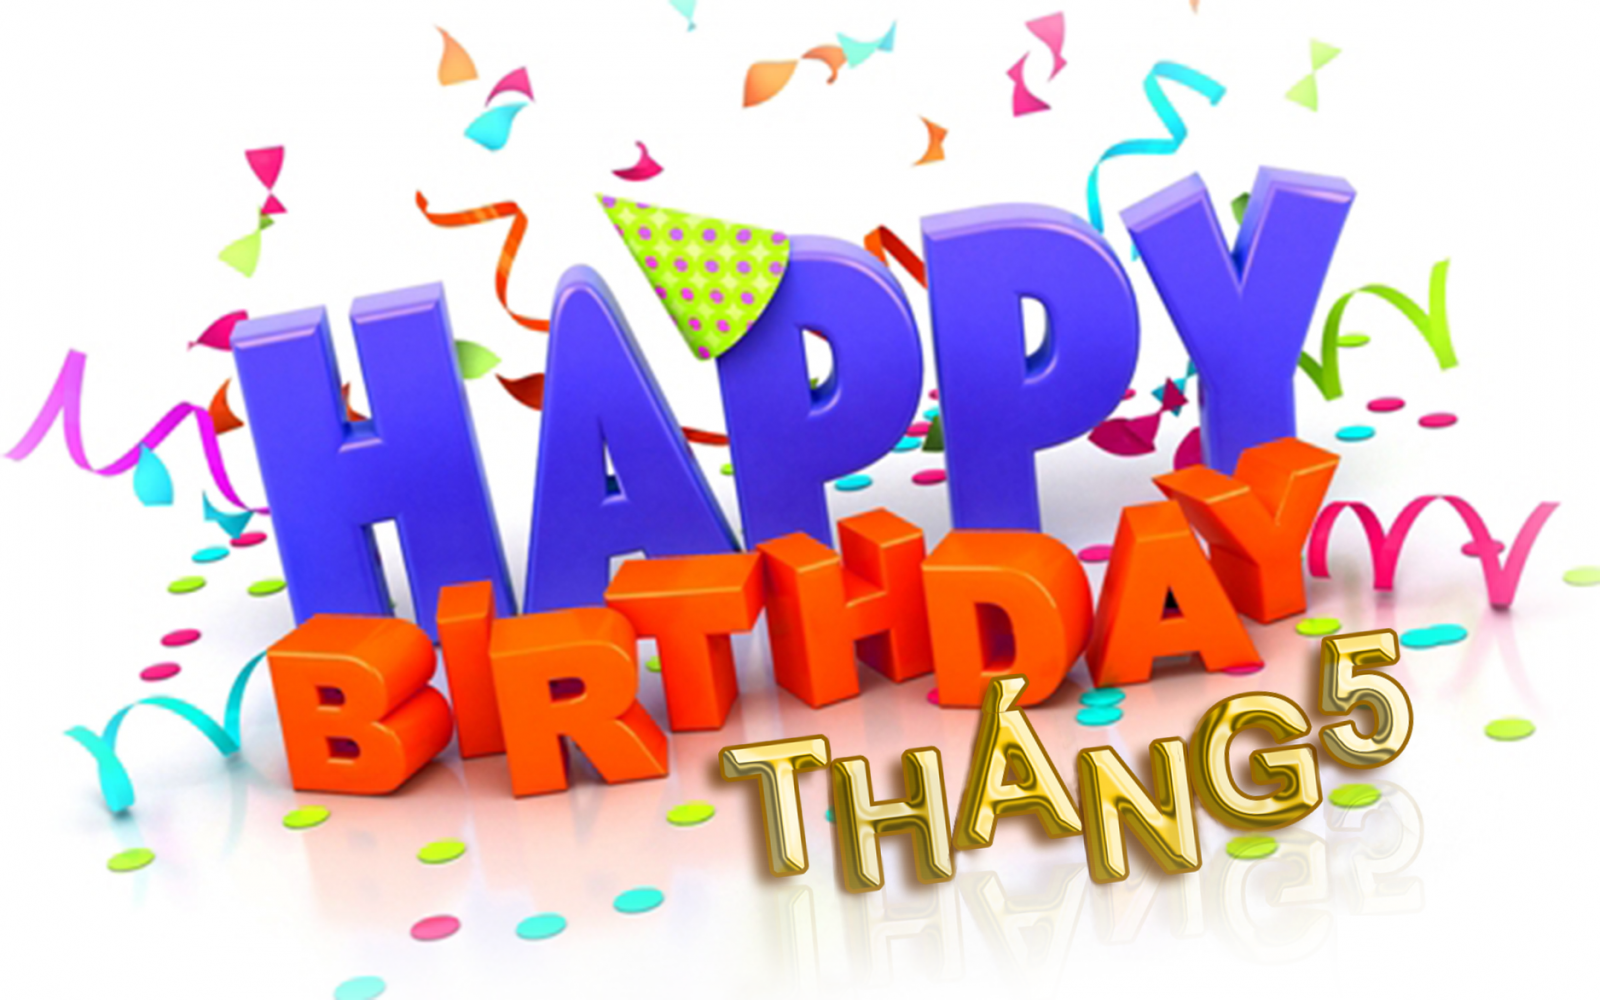 Happy birthday 3d png. Images free download